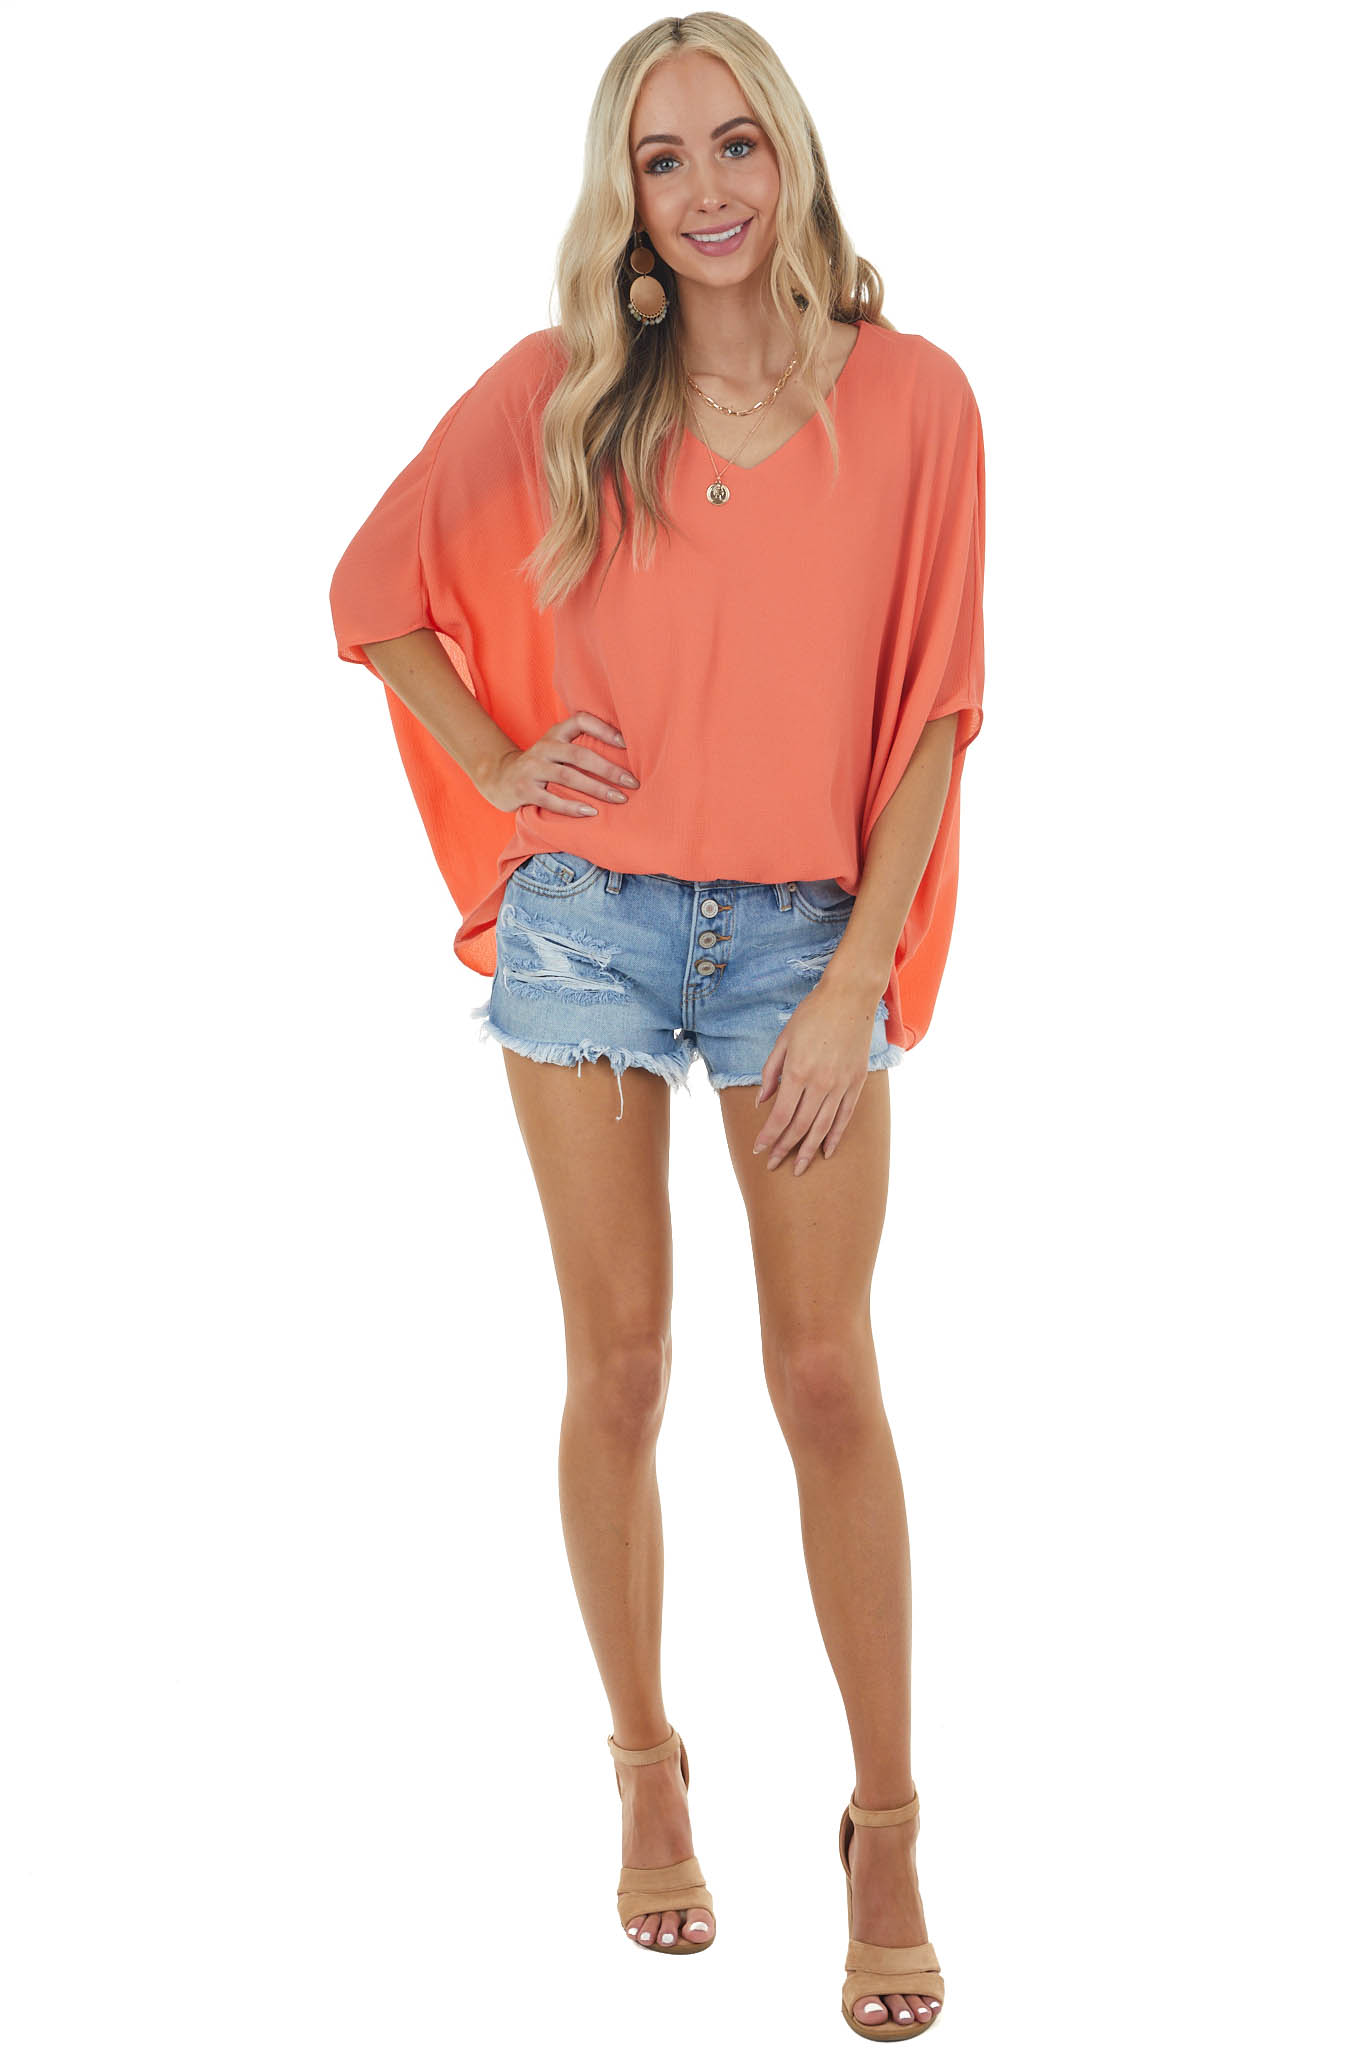 Coral V Neck Short Dolman Sleeve Blouse with Elastic Waist